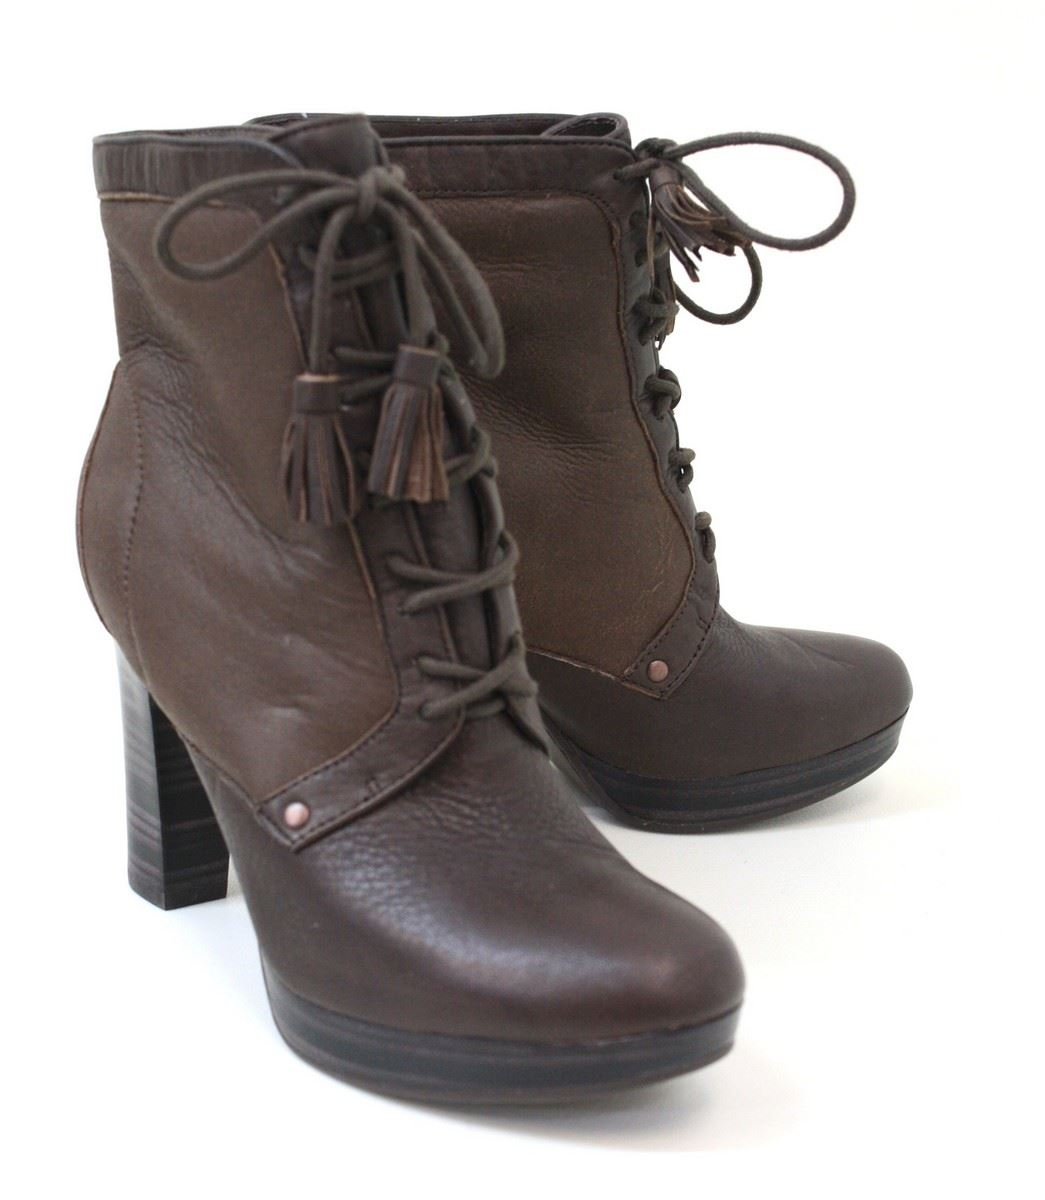 new ugg chocolate brown lace up block heel leather ankle